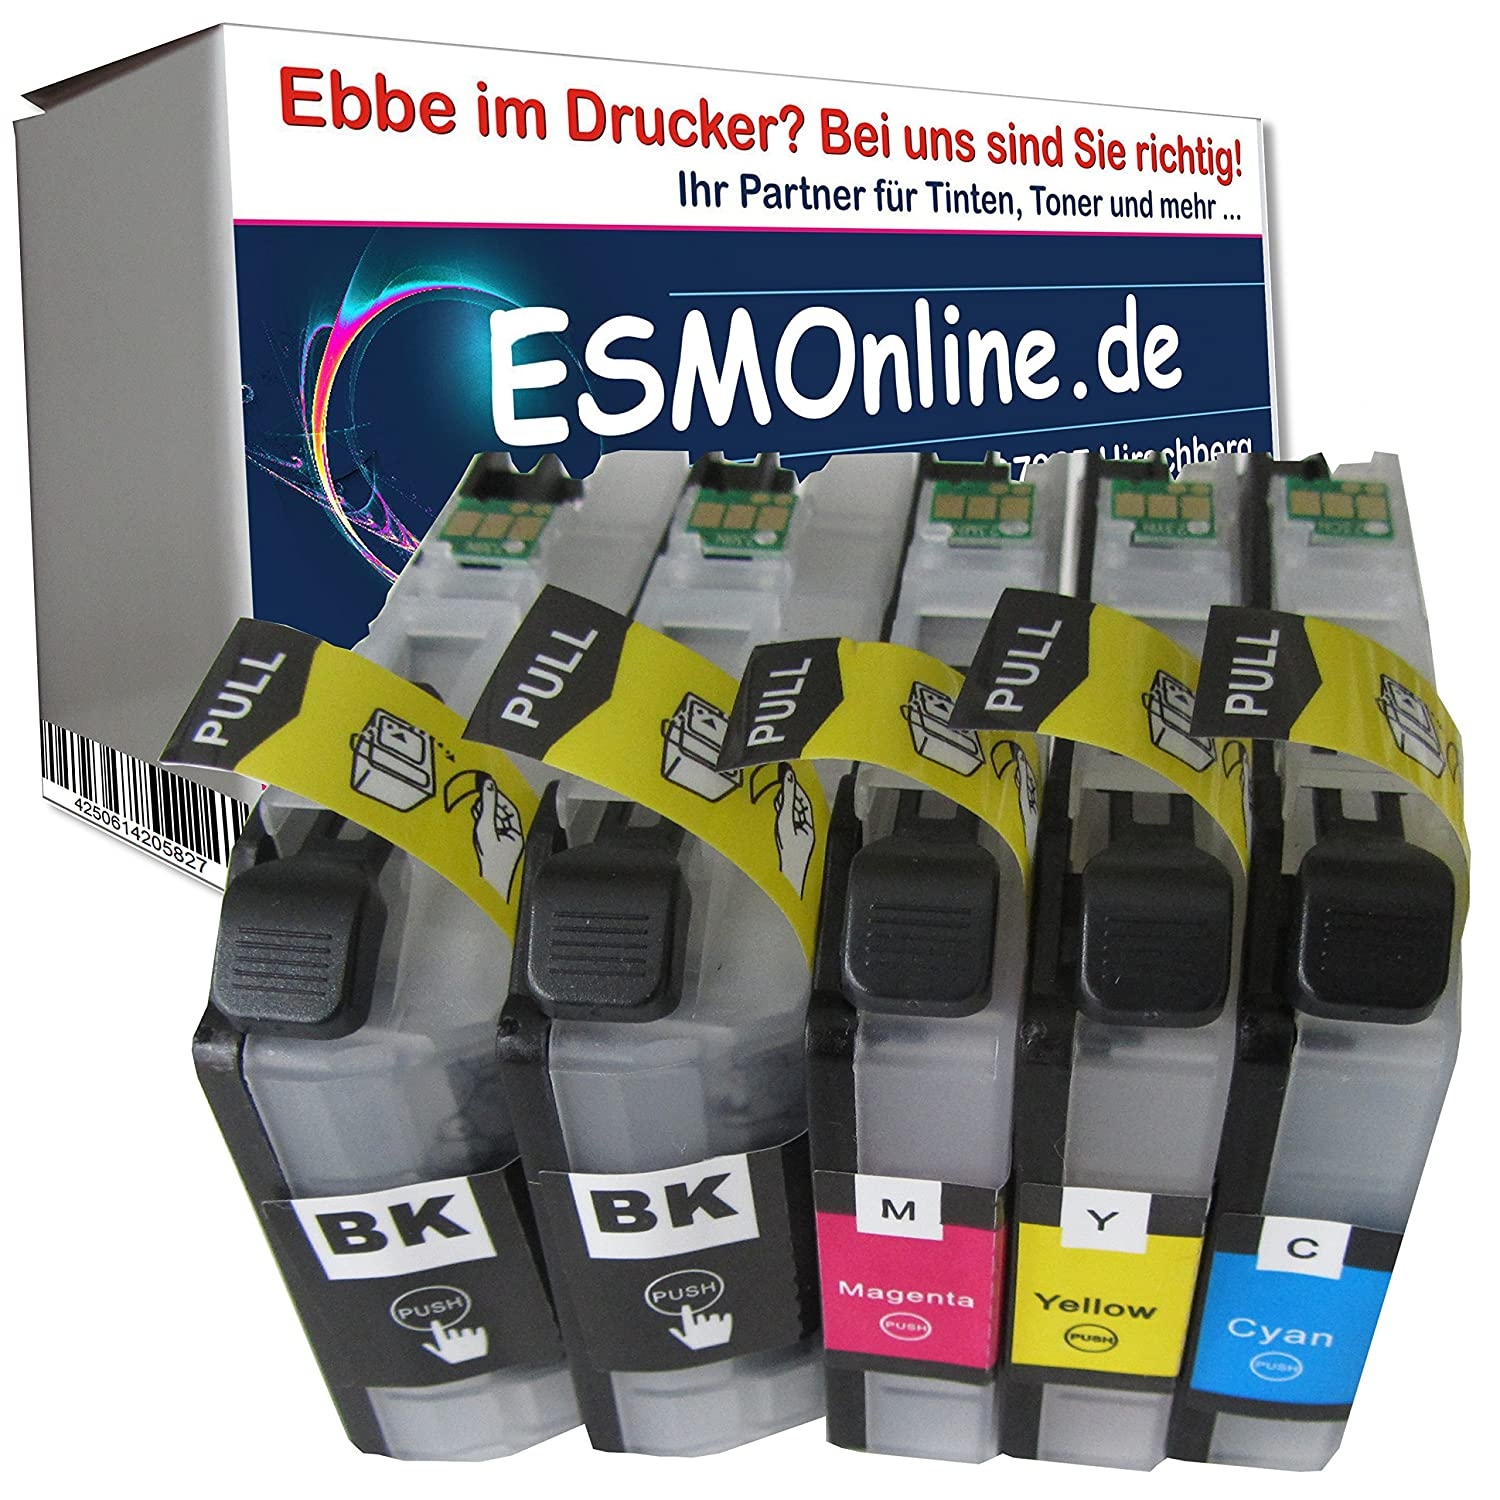 5 MultiPack ESMOnline comp. XL Cartuchos de V2 Chip Brother MFC ...